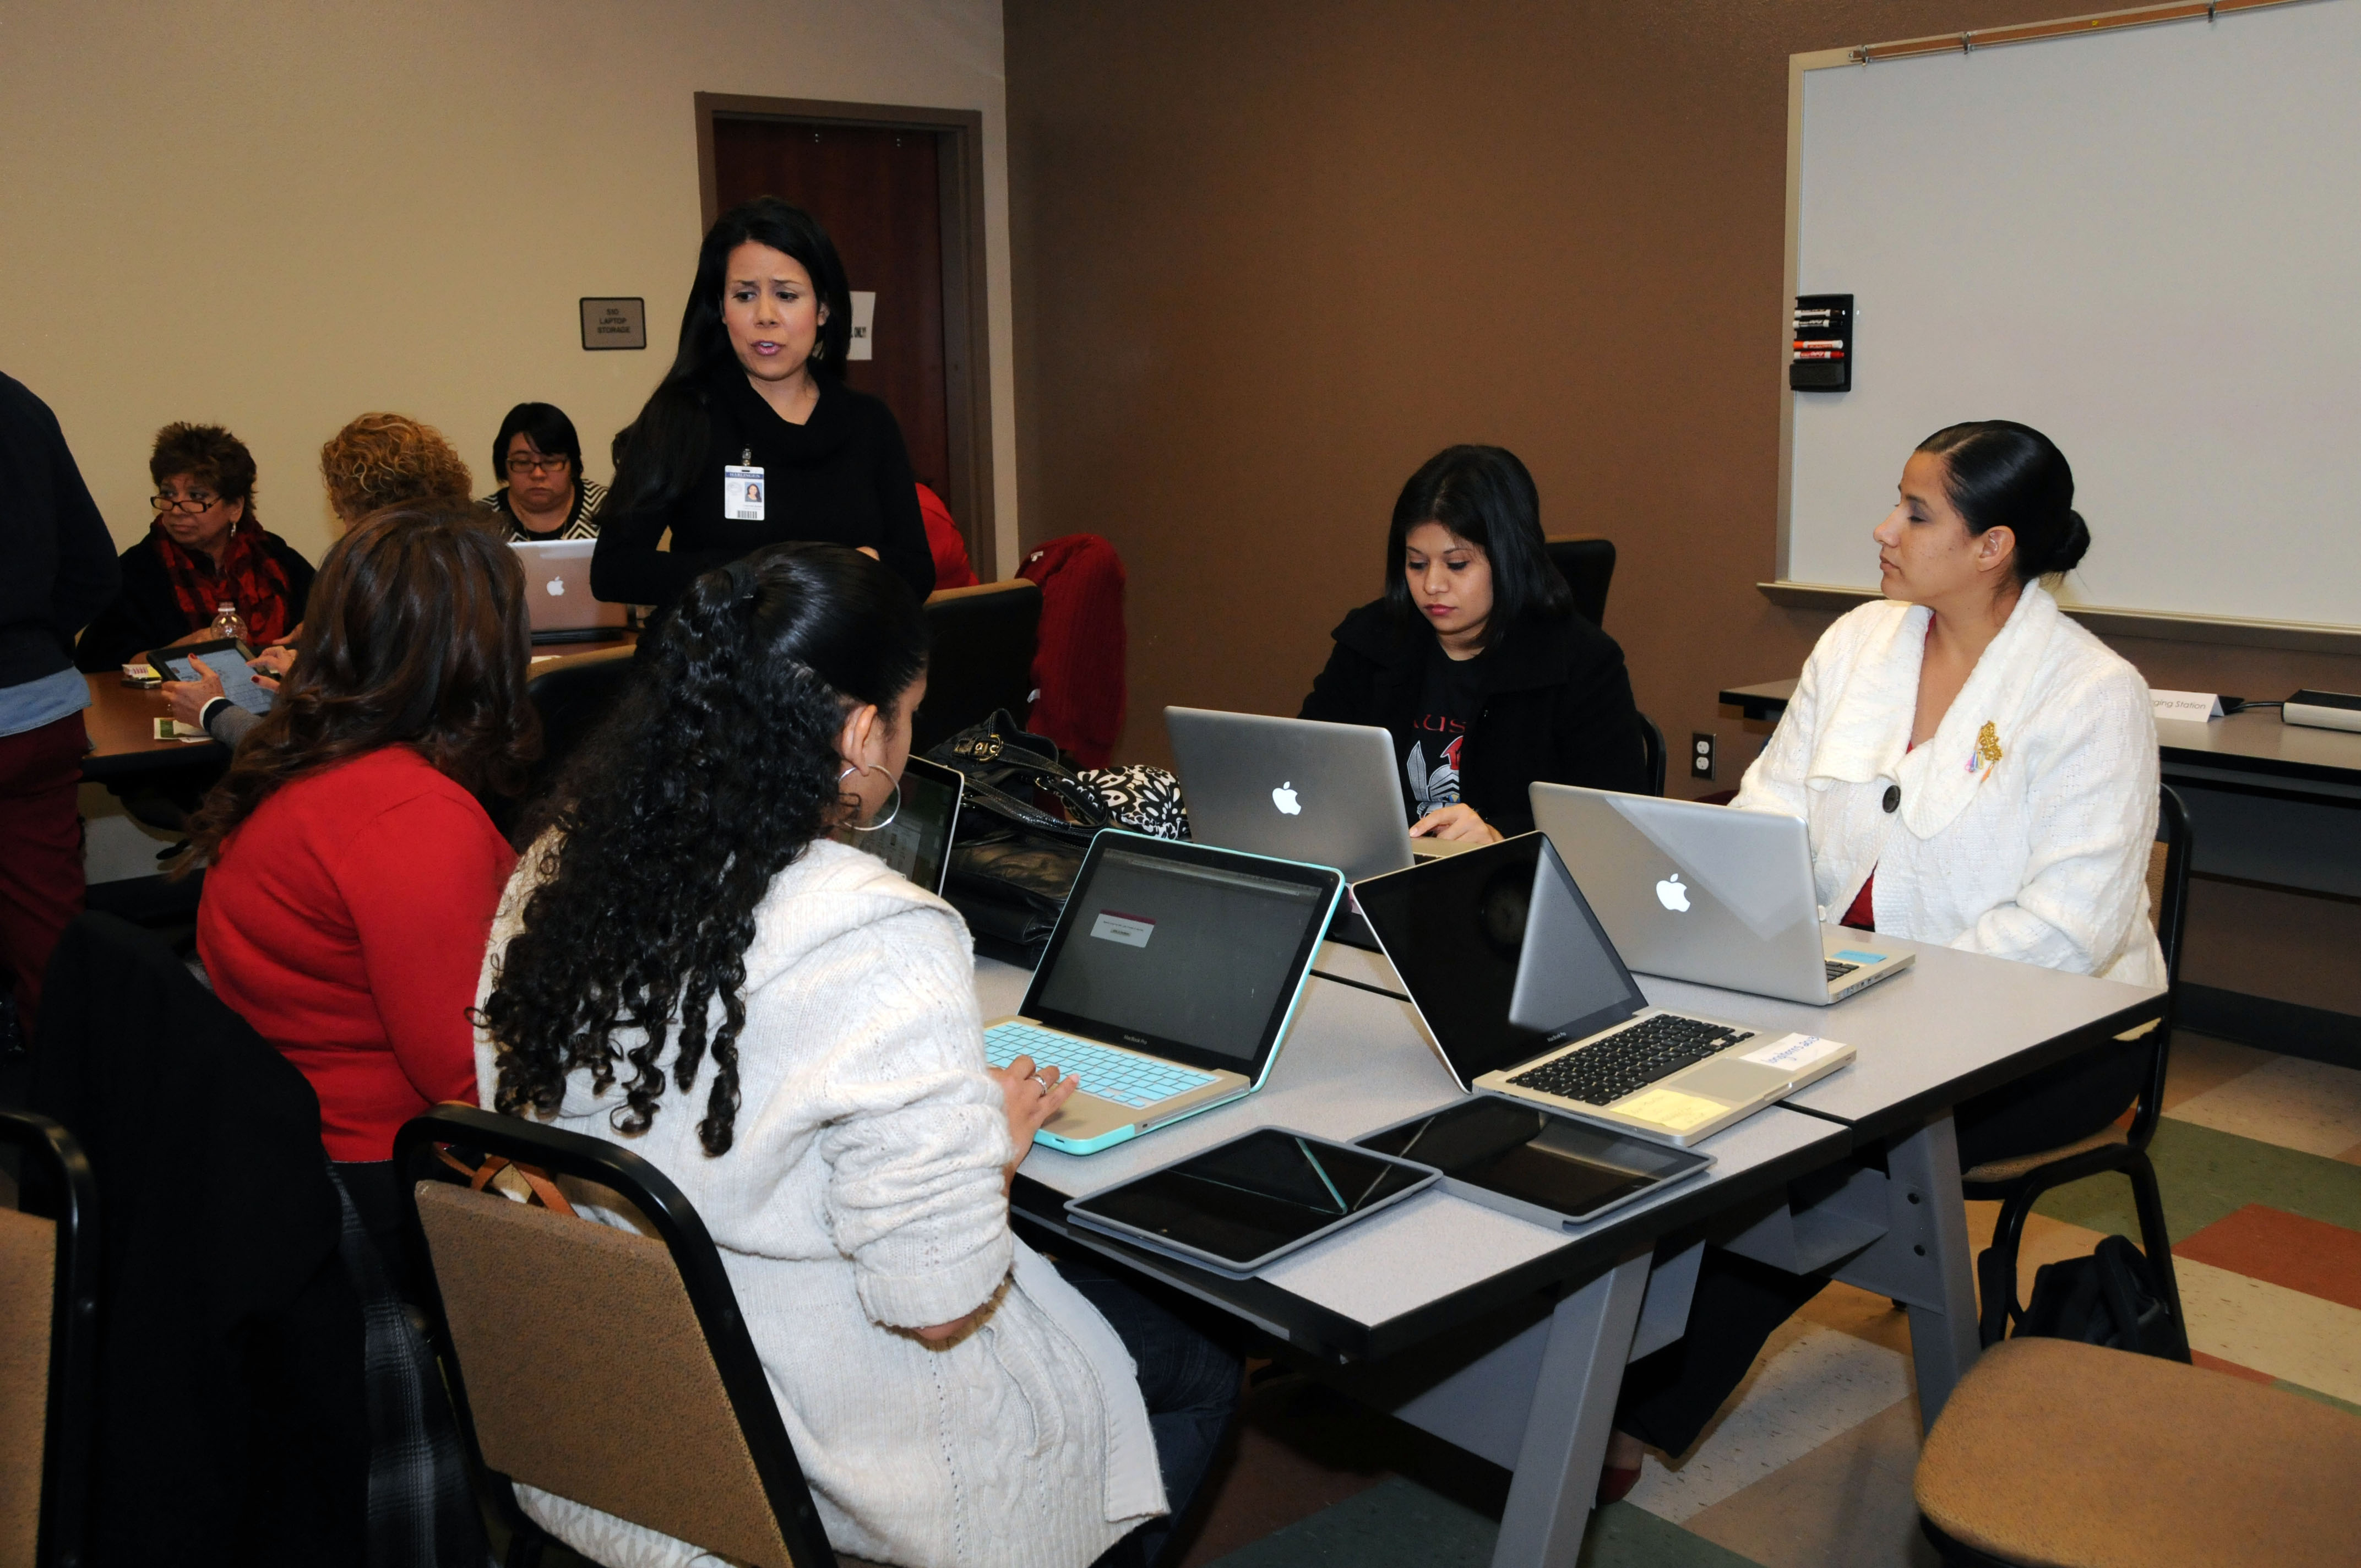 Digital classroom teachers ring in the holiday with technology during Techmas event